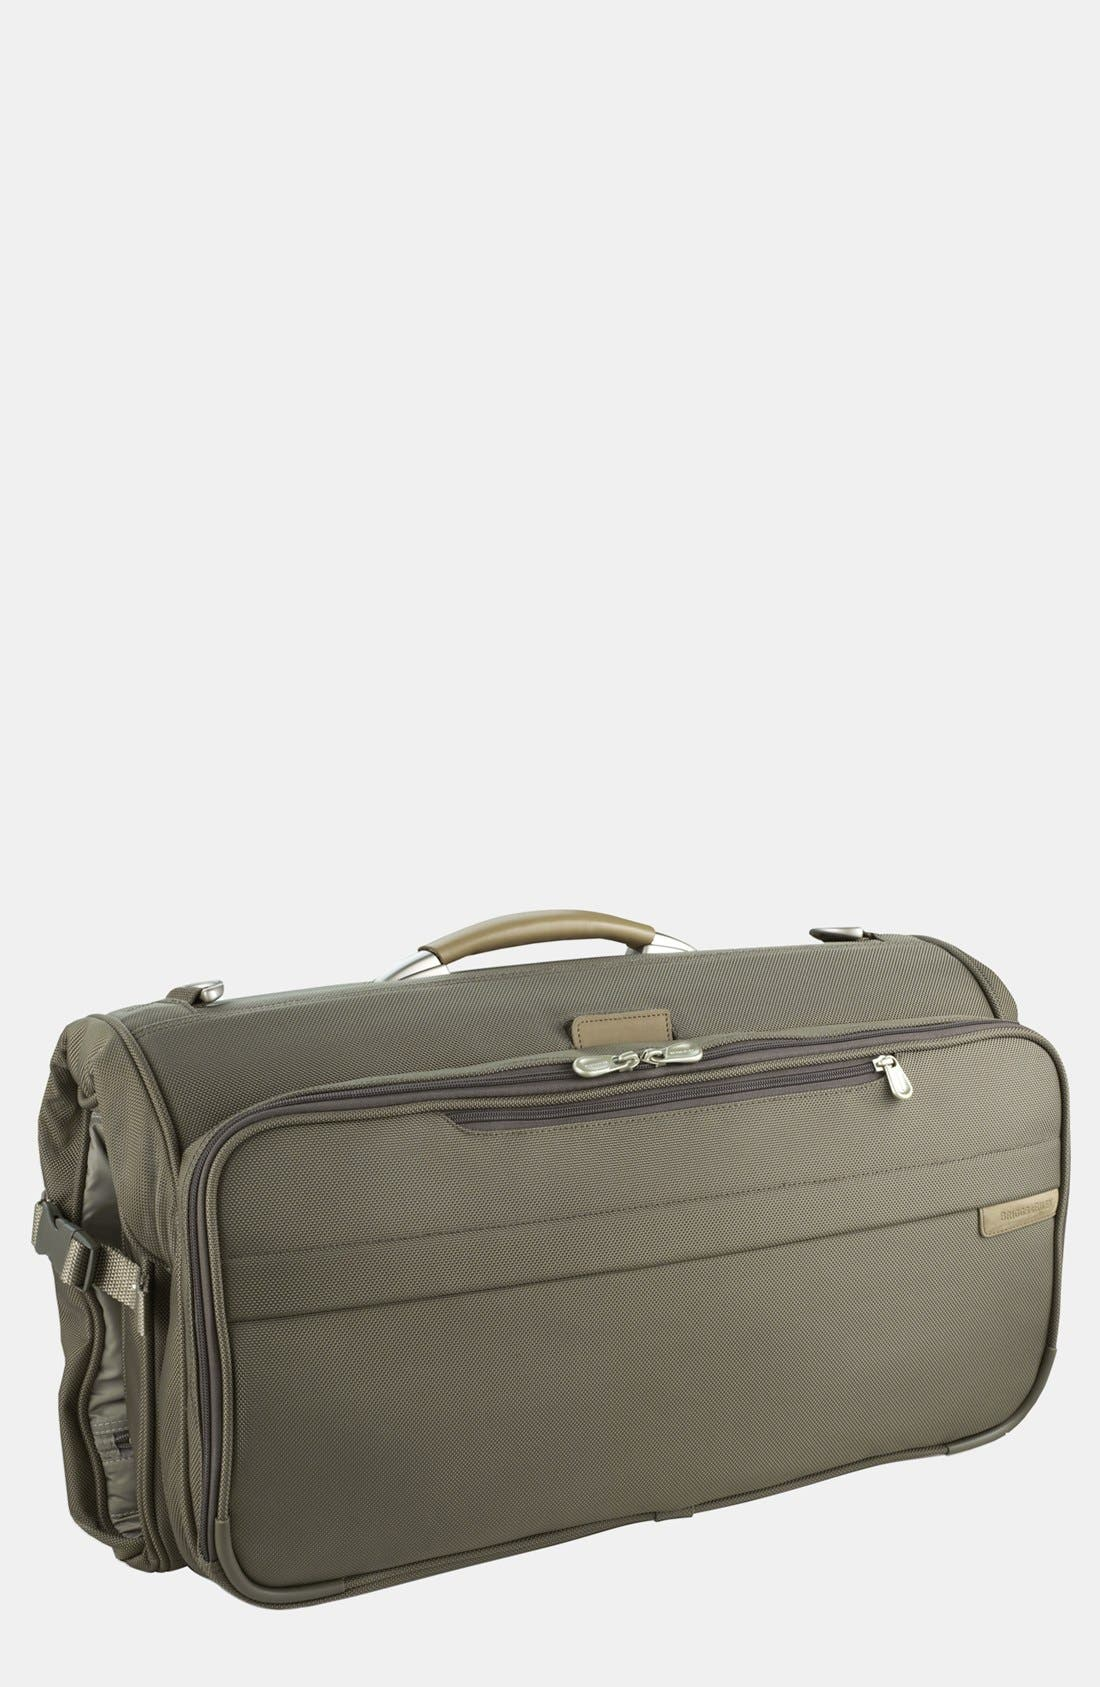 Alternate Image 1 Selected - Briggs & Riley 'Baseline - Compact' Garment Bag